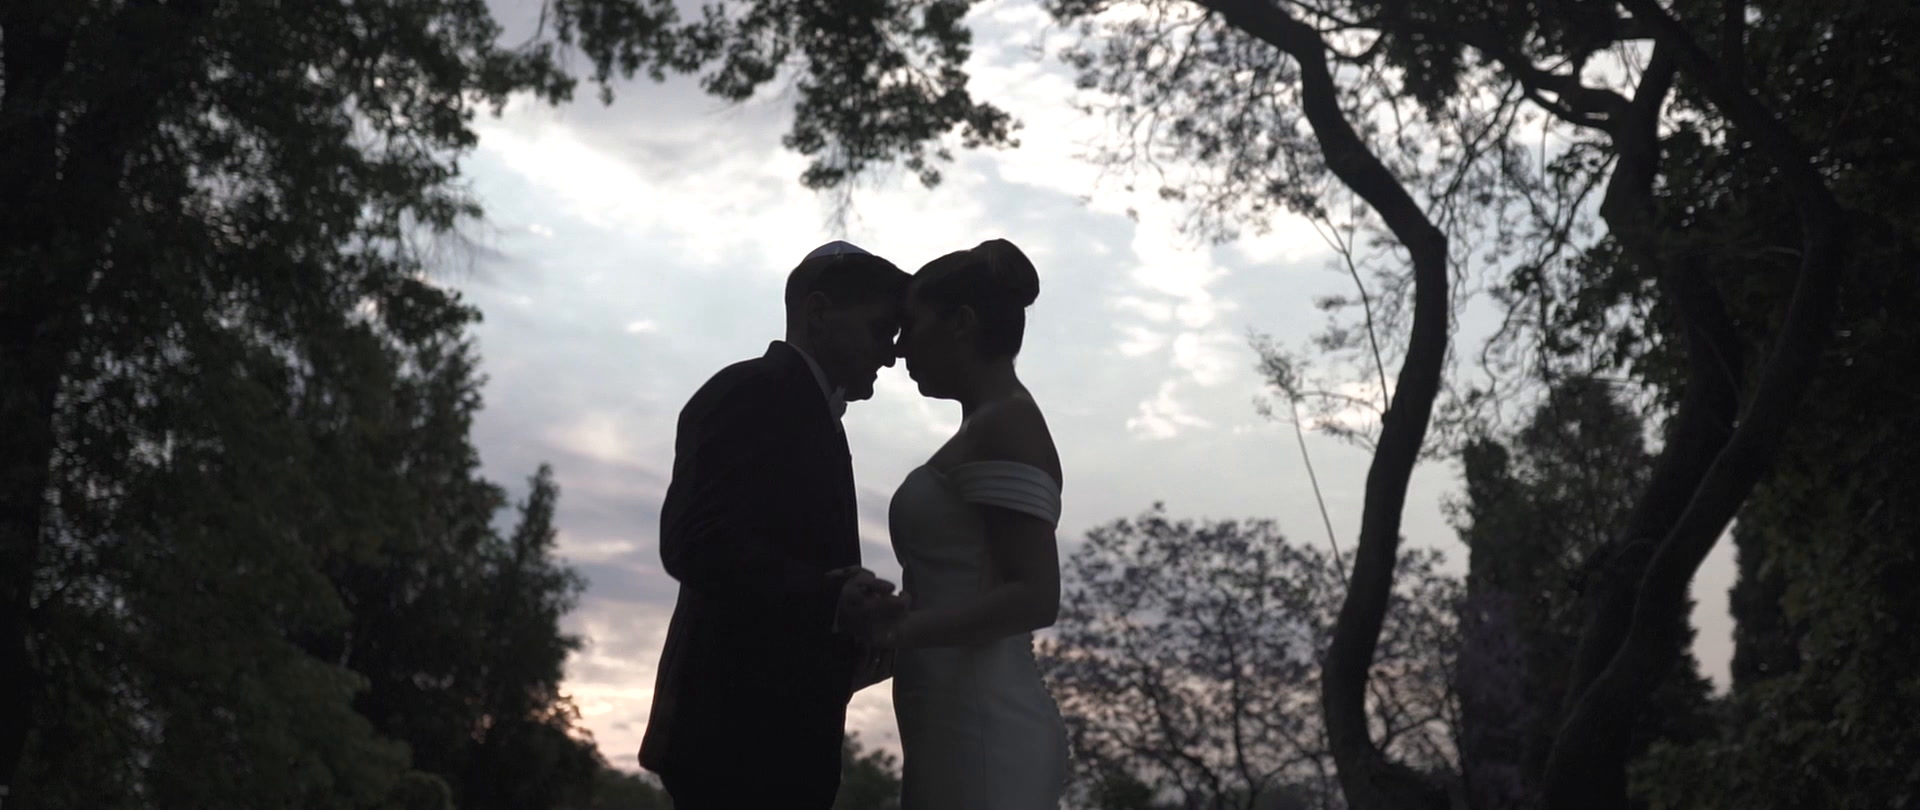 Rael + Stella | Johannesburg, South Africa | Summer Place